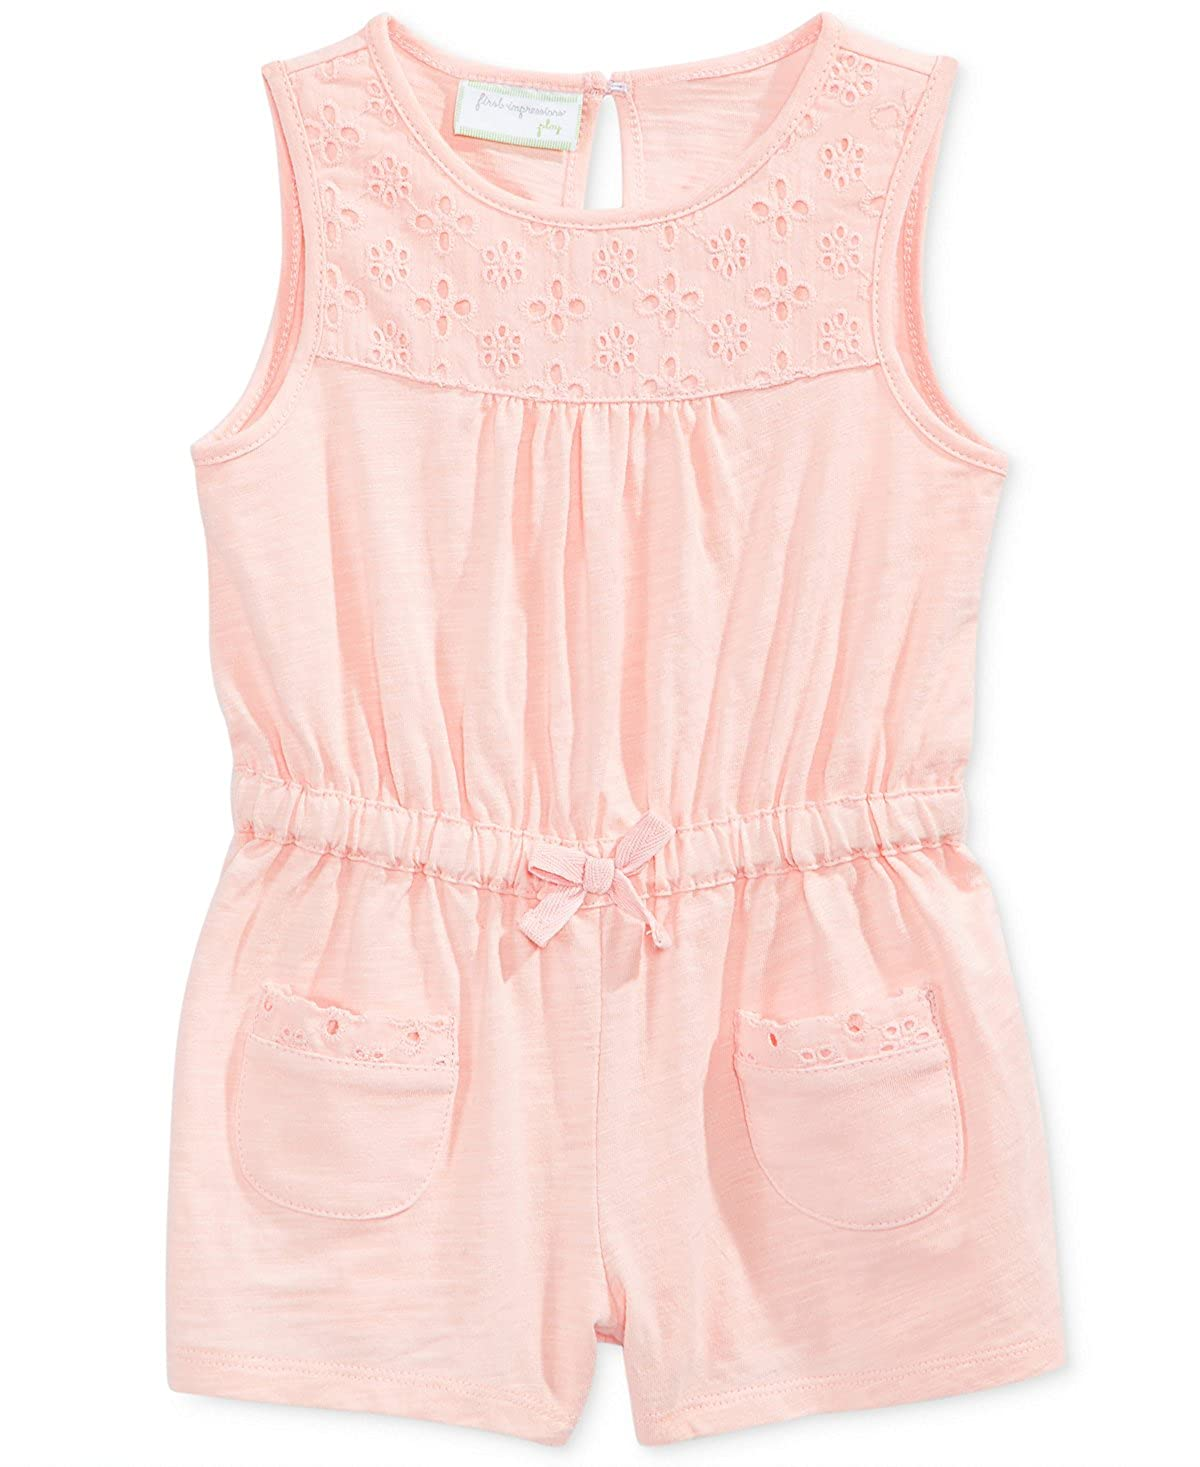 ba029c6fa86 Amazon.com  First Impressions Baby Girls Eyelet-Trim Cotton Romper  Clothing